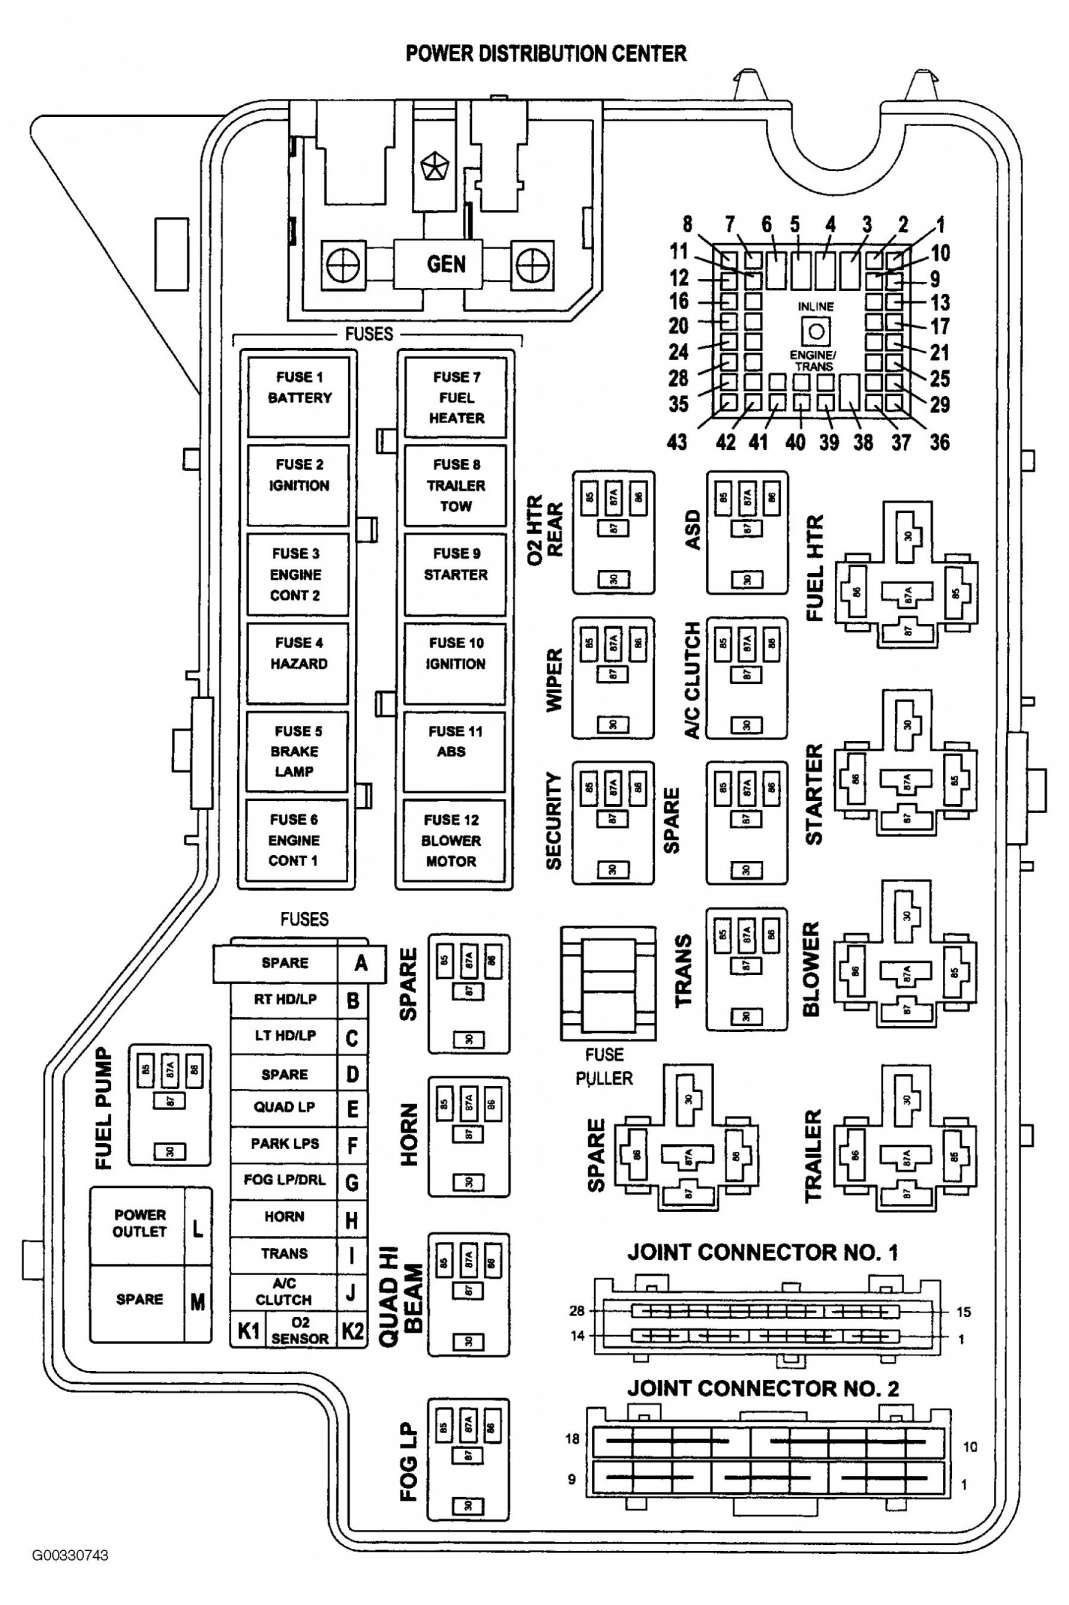 2012 ram 1500 fuse box 17 2002 dodge ram truck fuse box diagram truck diagram in 2020  2002 dodge ram truck fuse box diagram